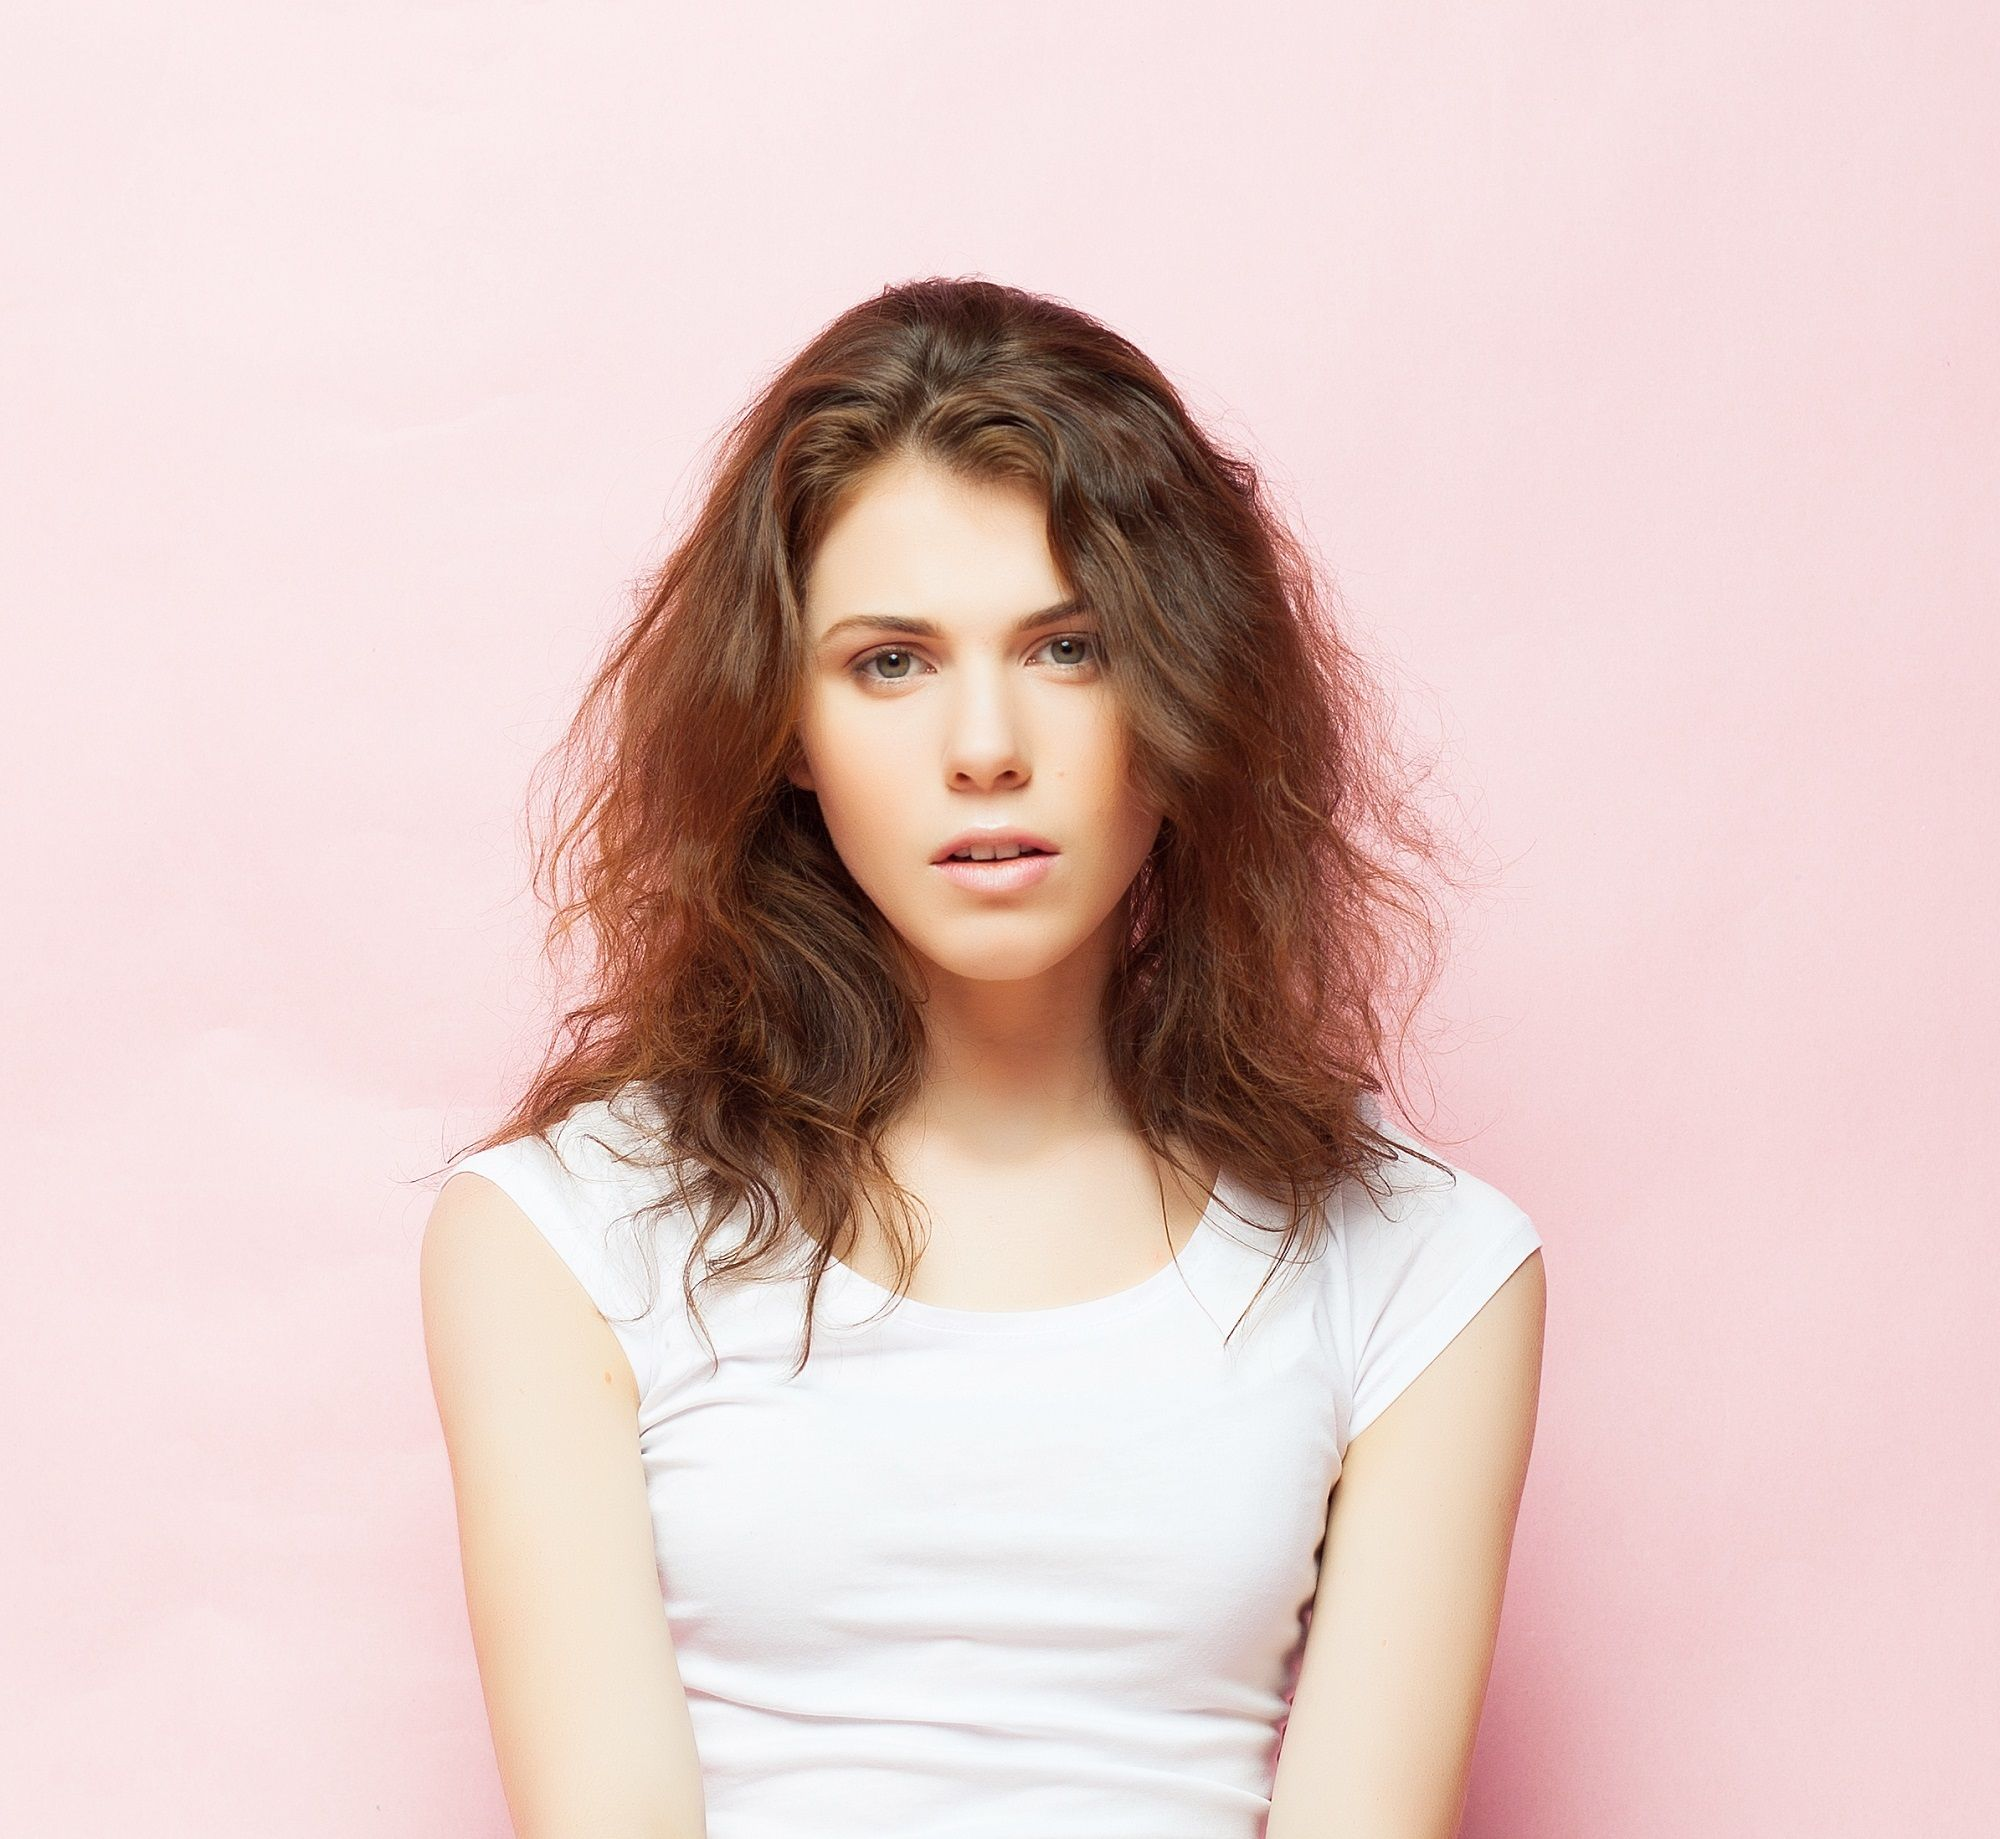 Frizzy hairstyles: Closeup shot of a woman with messy brown hair against a pink background